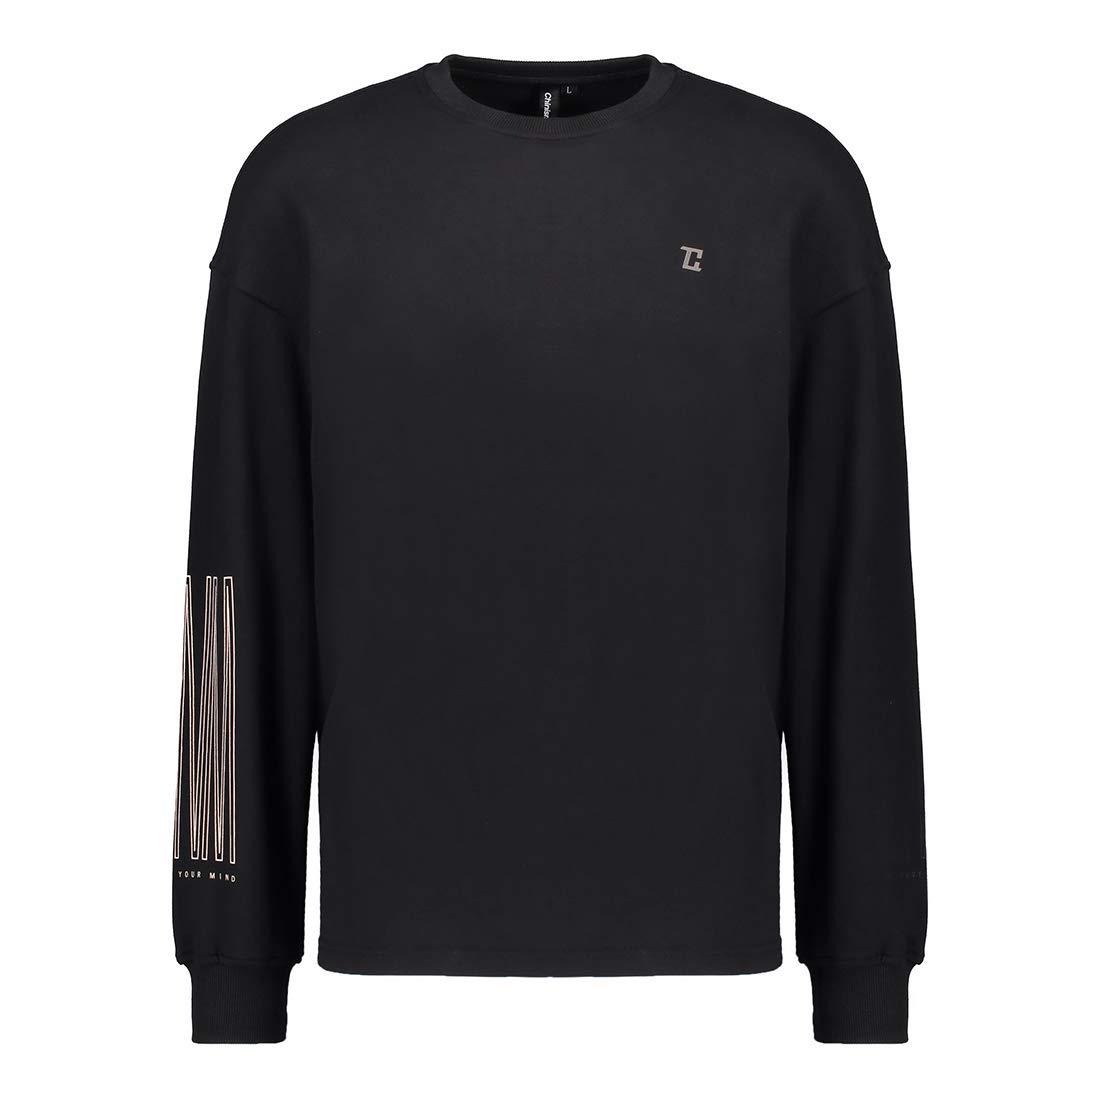 Men's Big&Tall Crewneck Fleece Pullover Sweatshirt - Relaxed Fit Long Sleeve Athletic Sweater Sports- Unisex Chin